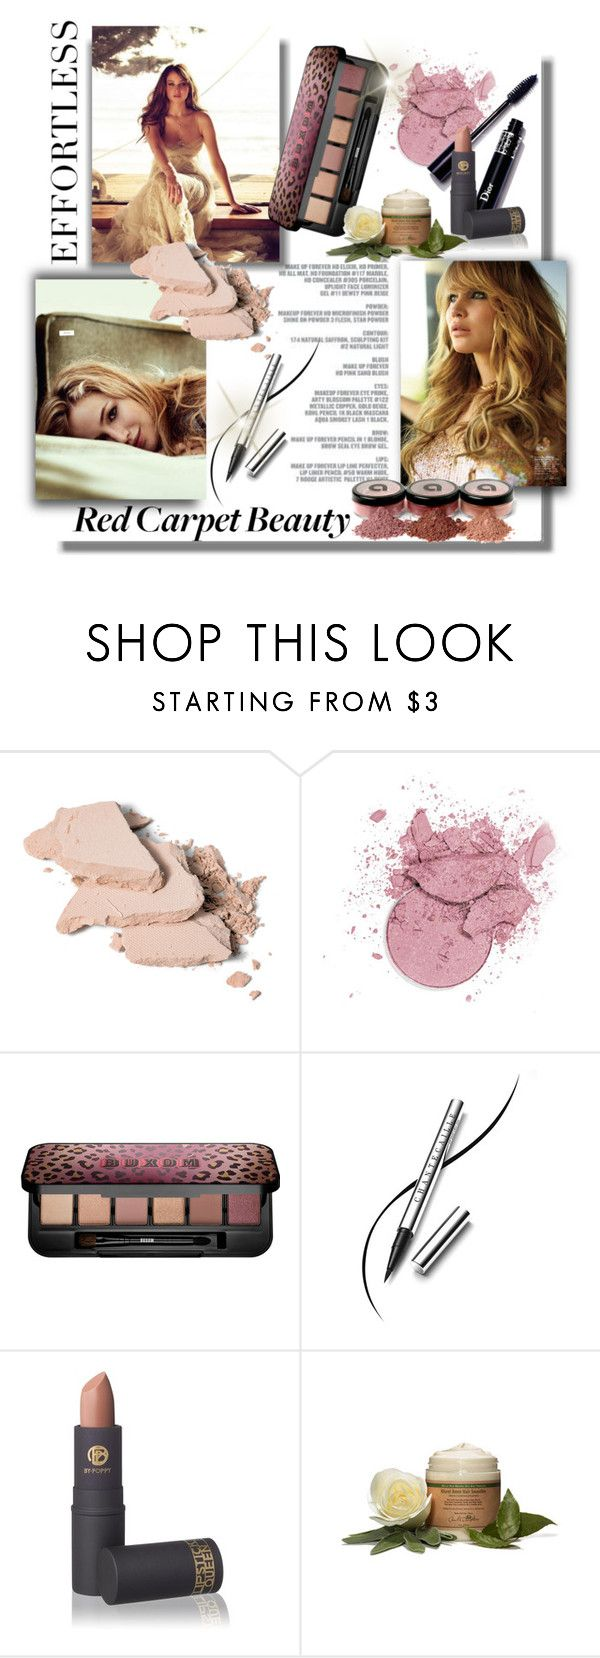 """Jennifer Lawrence"" by signaturenails-dstanley ❤ liked on Polyvore featuring beauty, ASOS, Buxom, Chantecaille, Lipstick Queen, Carol's Daughter and Market"